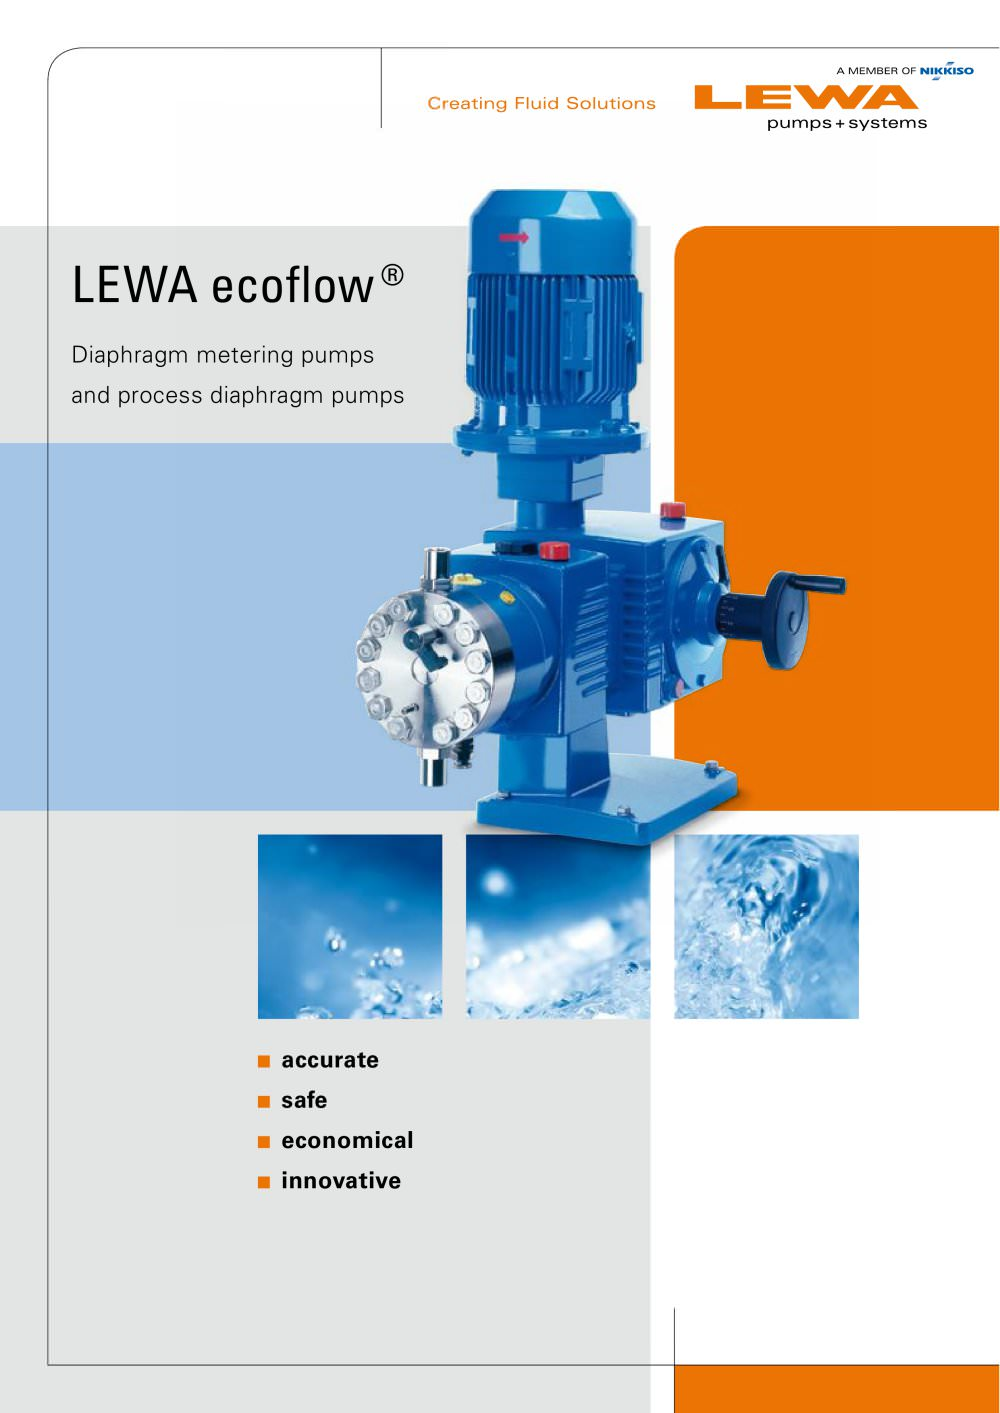 Lewa ecoflow diaphragm metering pumps and process diaphragm pumps lewa ecoflow diaphragm metering pumps and process diaphragm pumps 1 16 pages ccuart Images